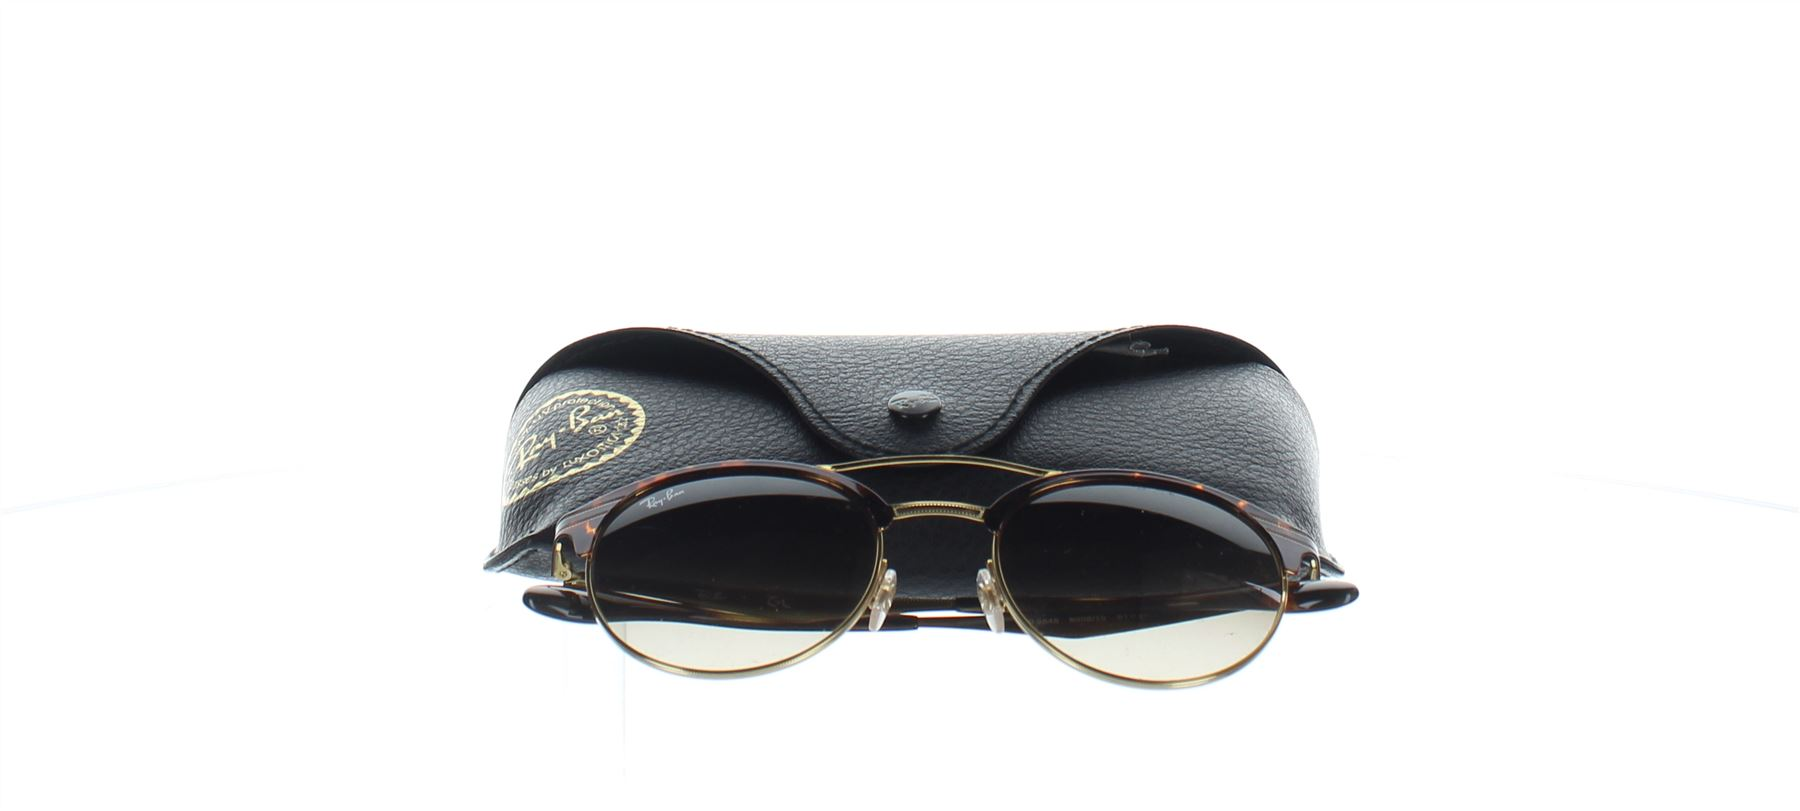 32fd2512769 Details about RAY-BAN RB3545 Brown Tortoise Shell Sunglasses